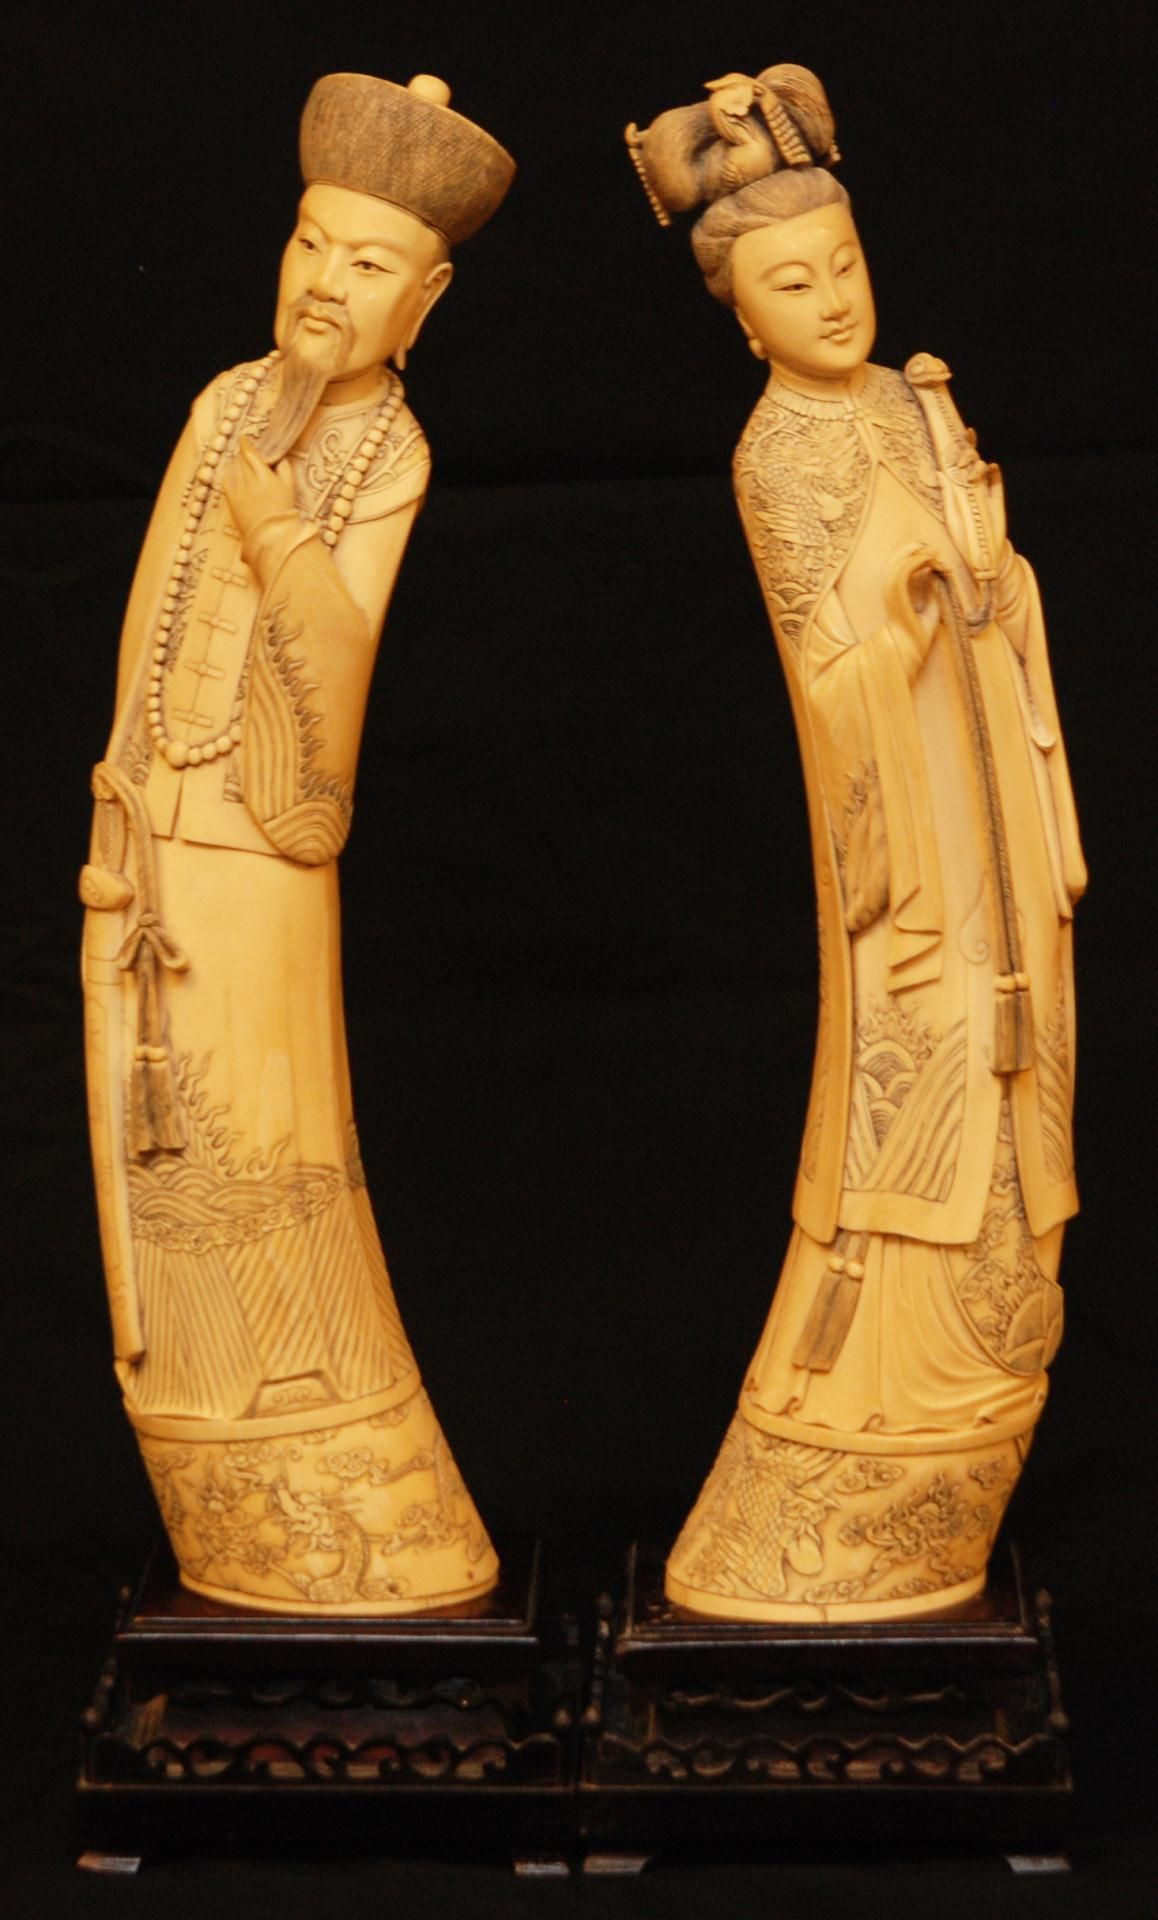 70efbb435fd5 Pair of large Chinese hand carved ivory Emperor and Empress tusk figures.  The empress is depicted holding beaded Ruyi scepter with tassel and having  relief ...